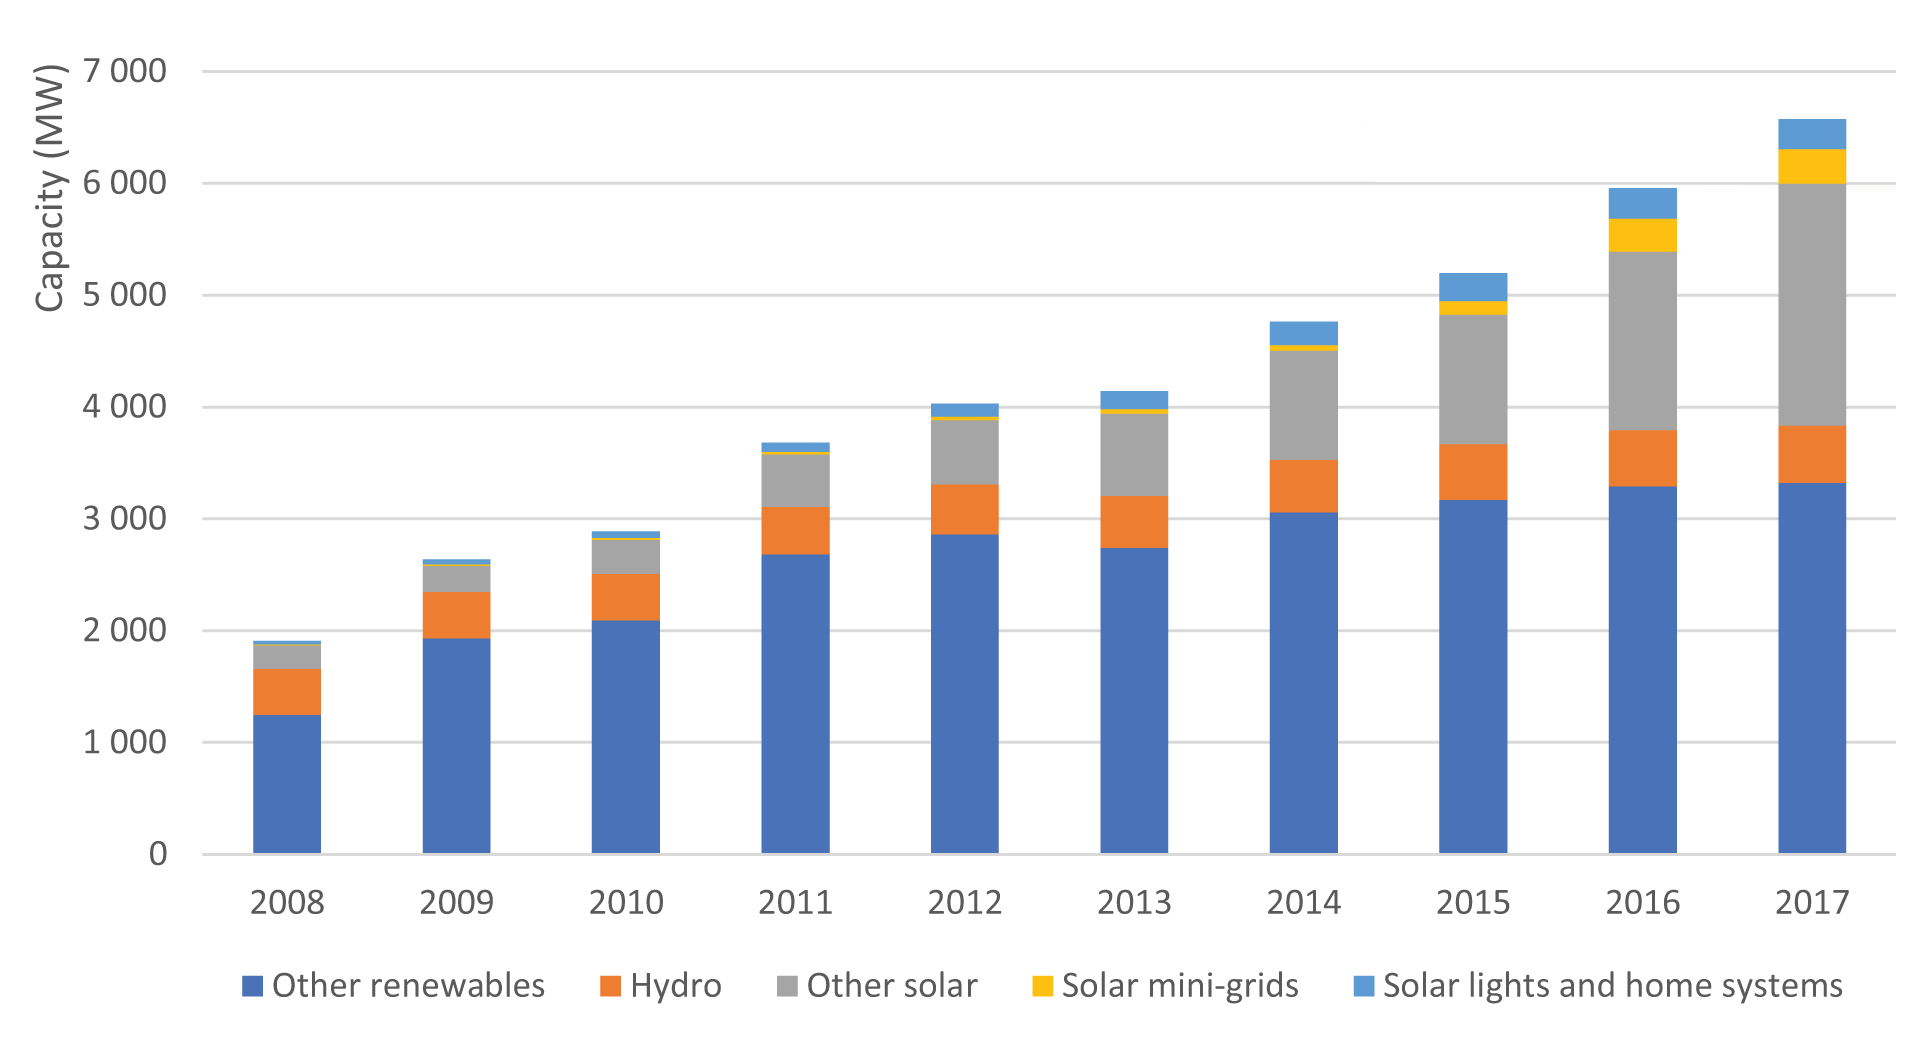 Fig. 4. Installed power of autonomous sources and local mini-networks in the world. Source: IRENA Off-grid renewable energy solutions, 2018.